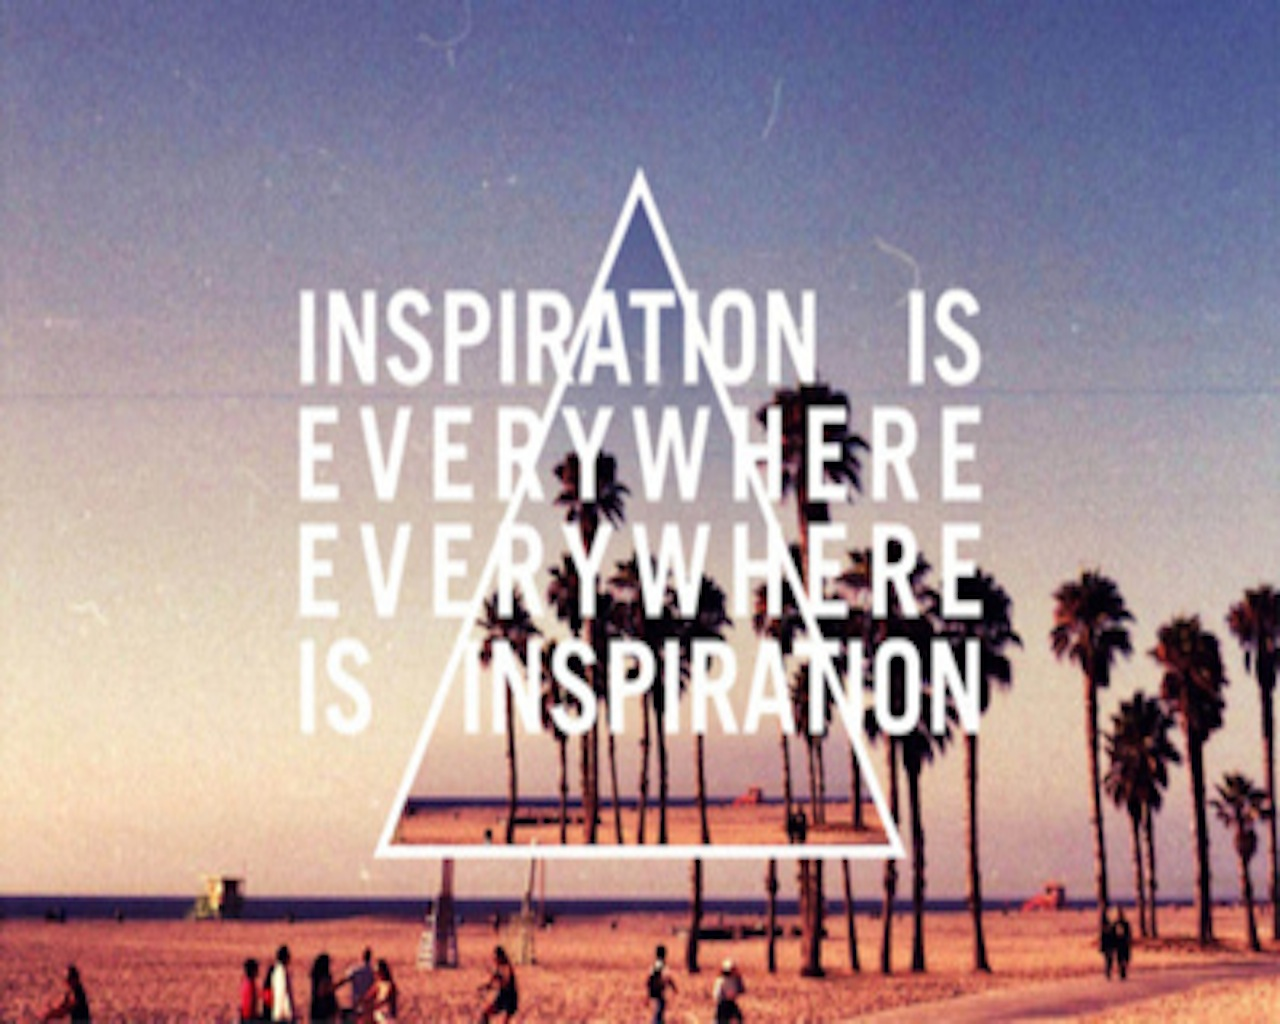 Inspiration Is Everywhere Quotes. QuotesGram